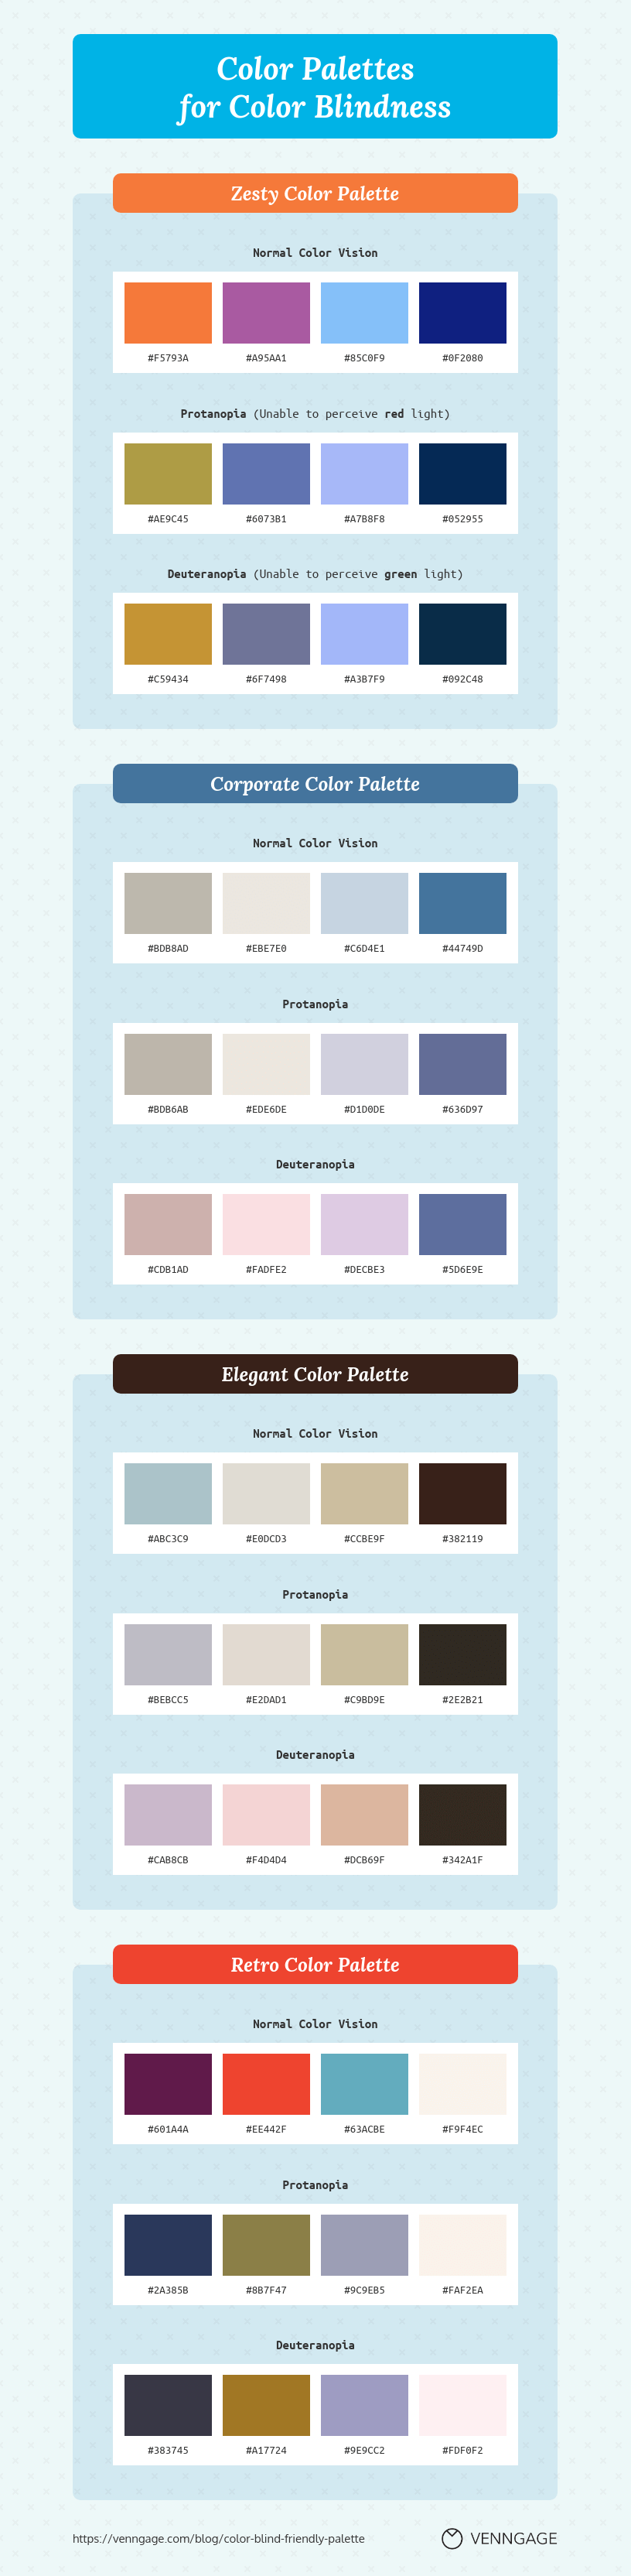 Color blind friendly color palette